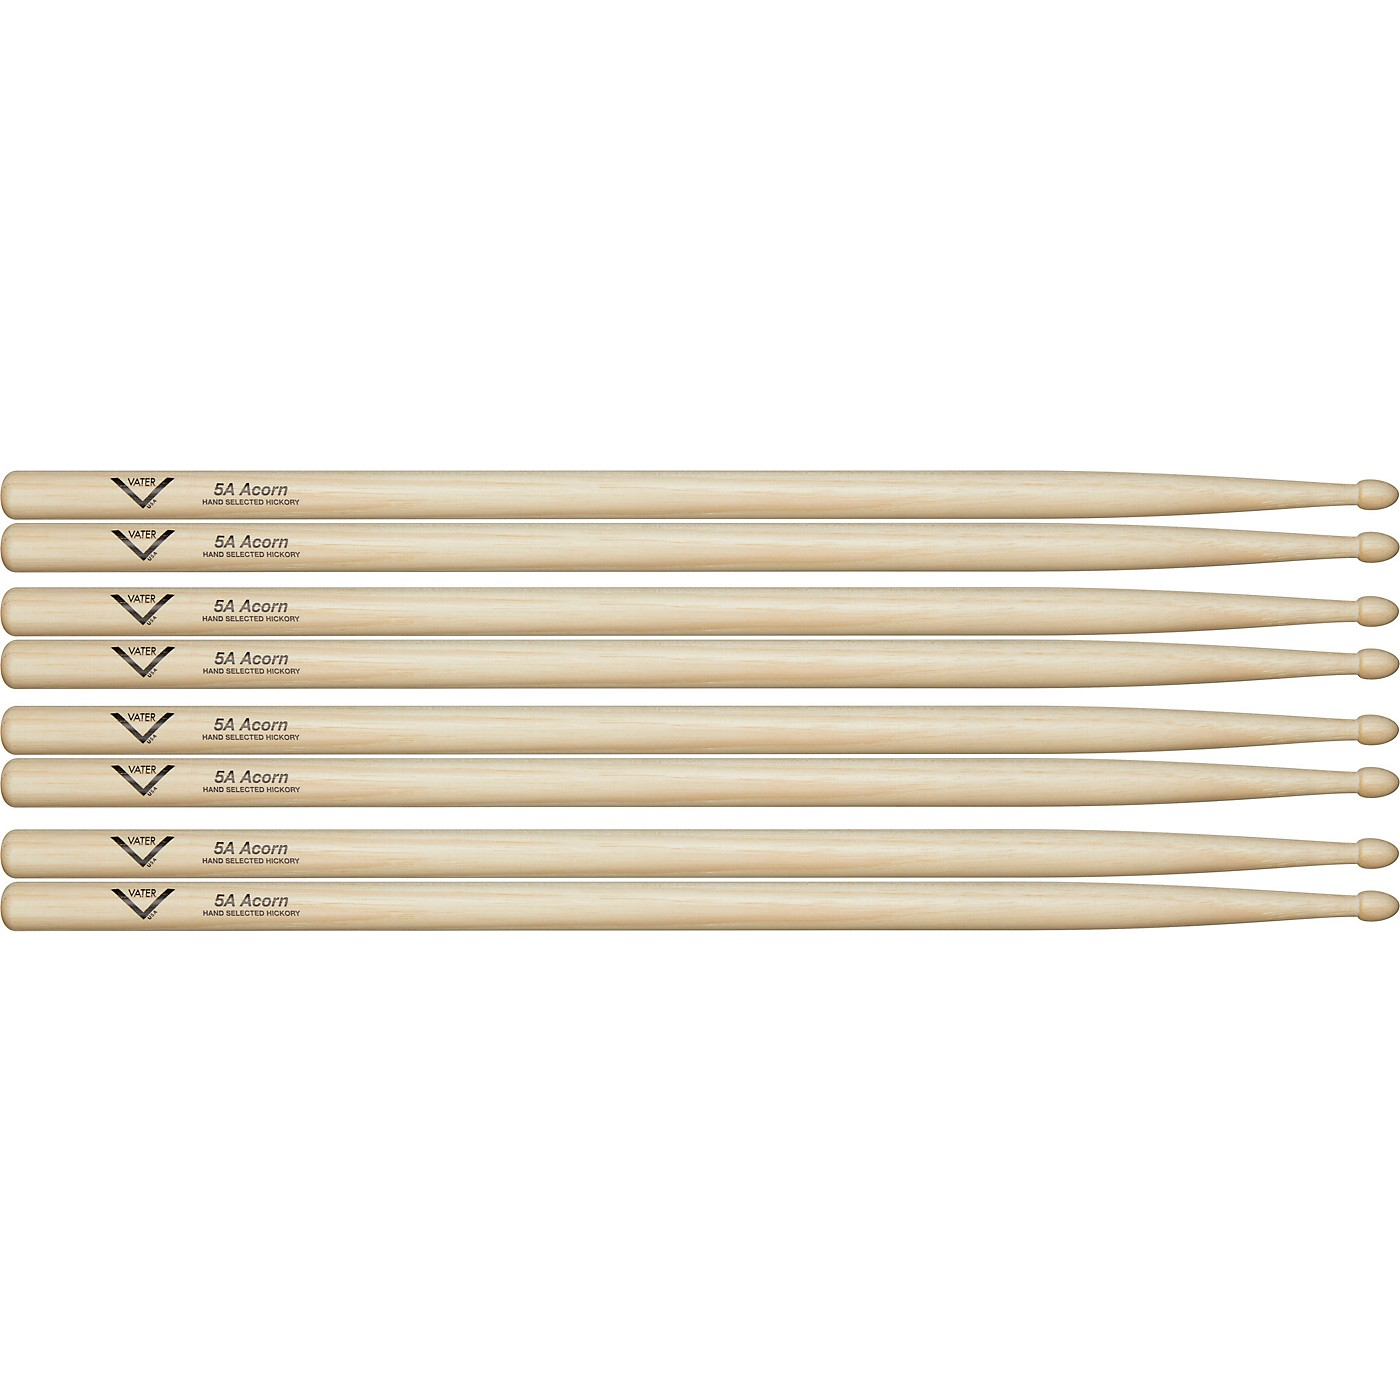 Vater 5A Acorn - Buy 3, Get 1 Free Value Pack thumbnail